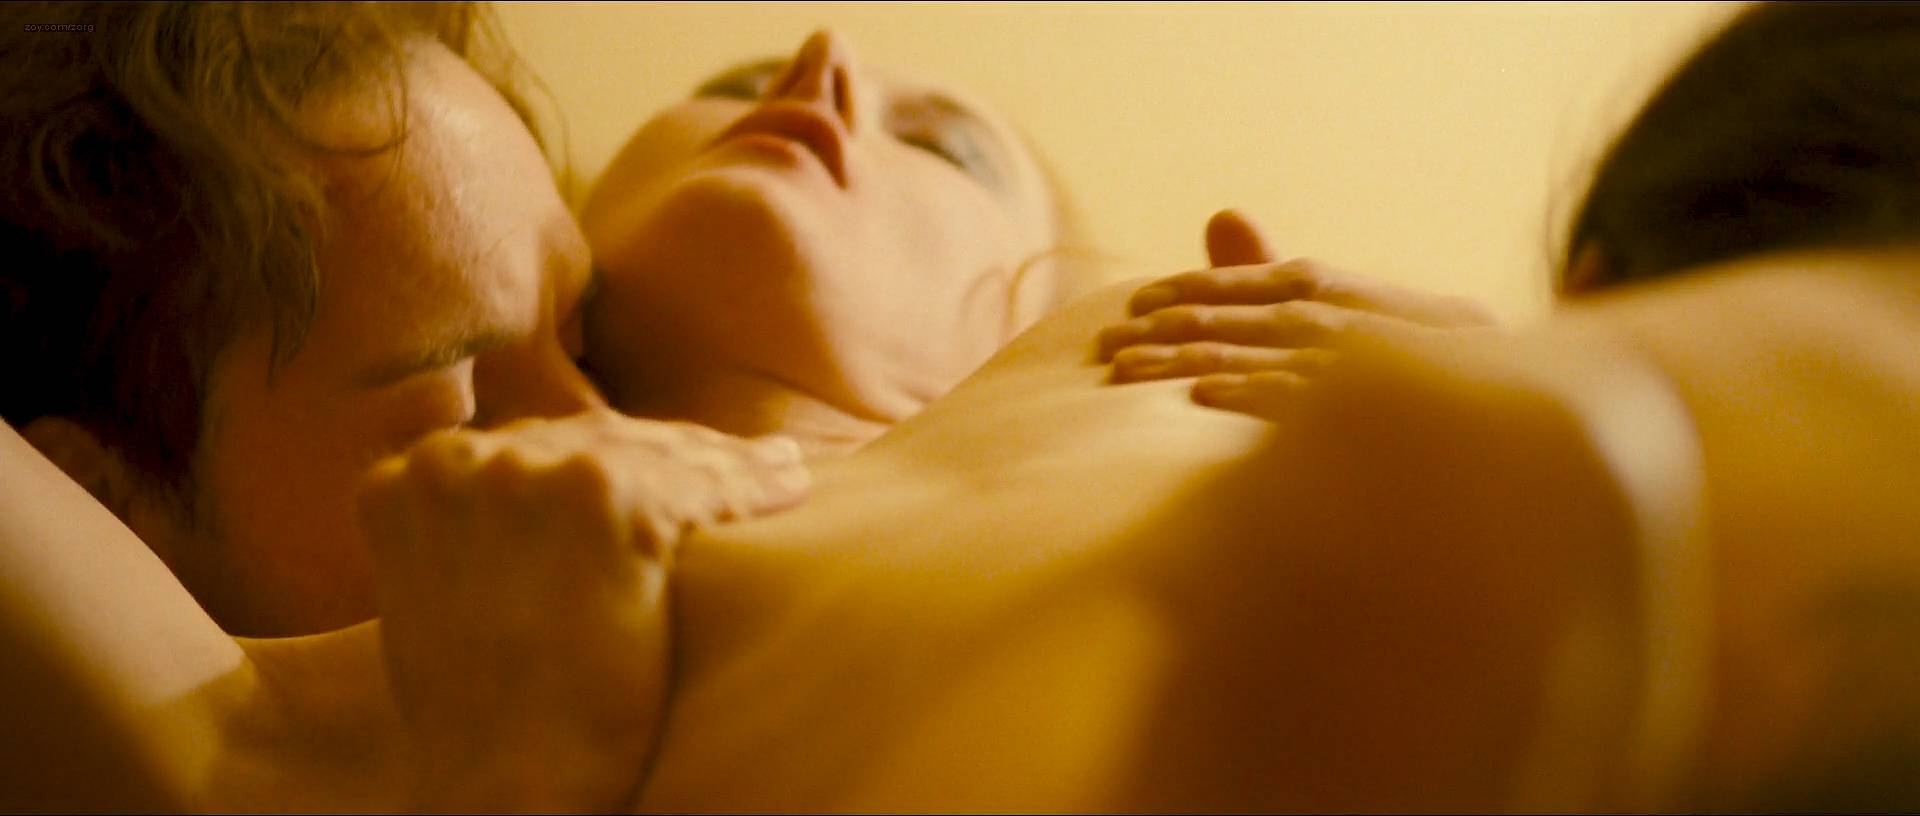 Carey Mulligan nude full frontal Nicole Beharie Amy Hargreaves and other's all nude in - Shame (2011) HD 1080p (2)